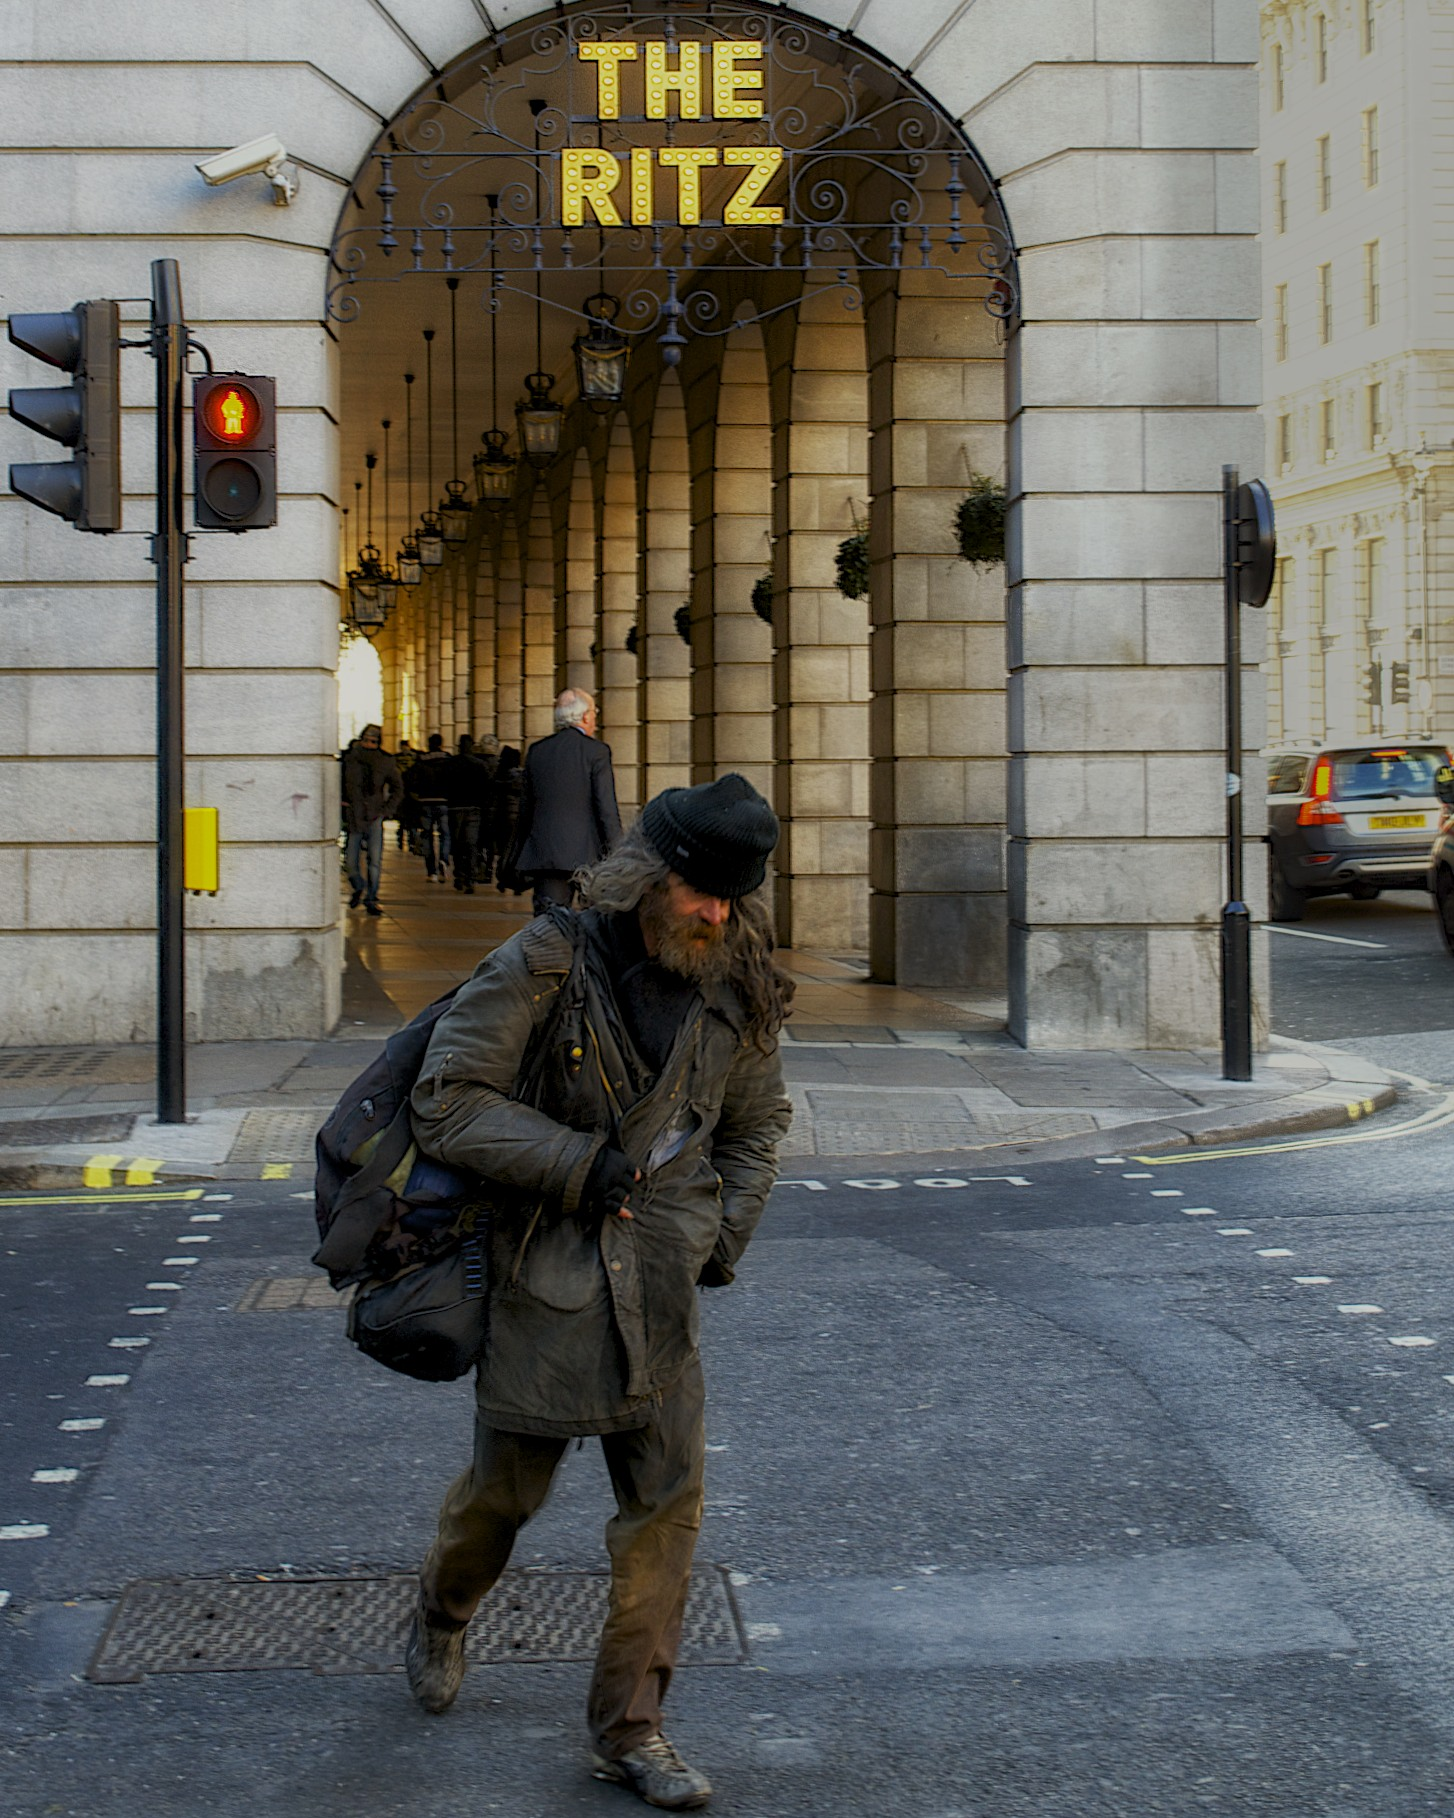 homeless guy walking past the ritz in london.jpg